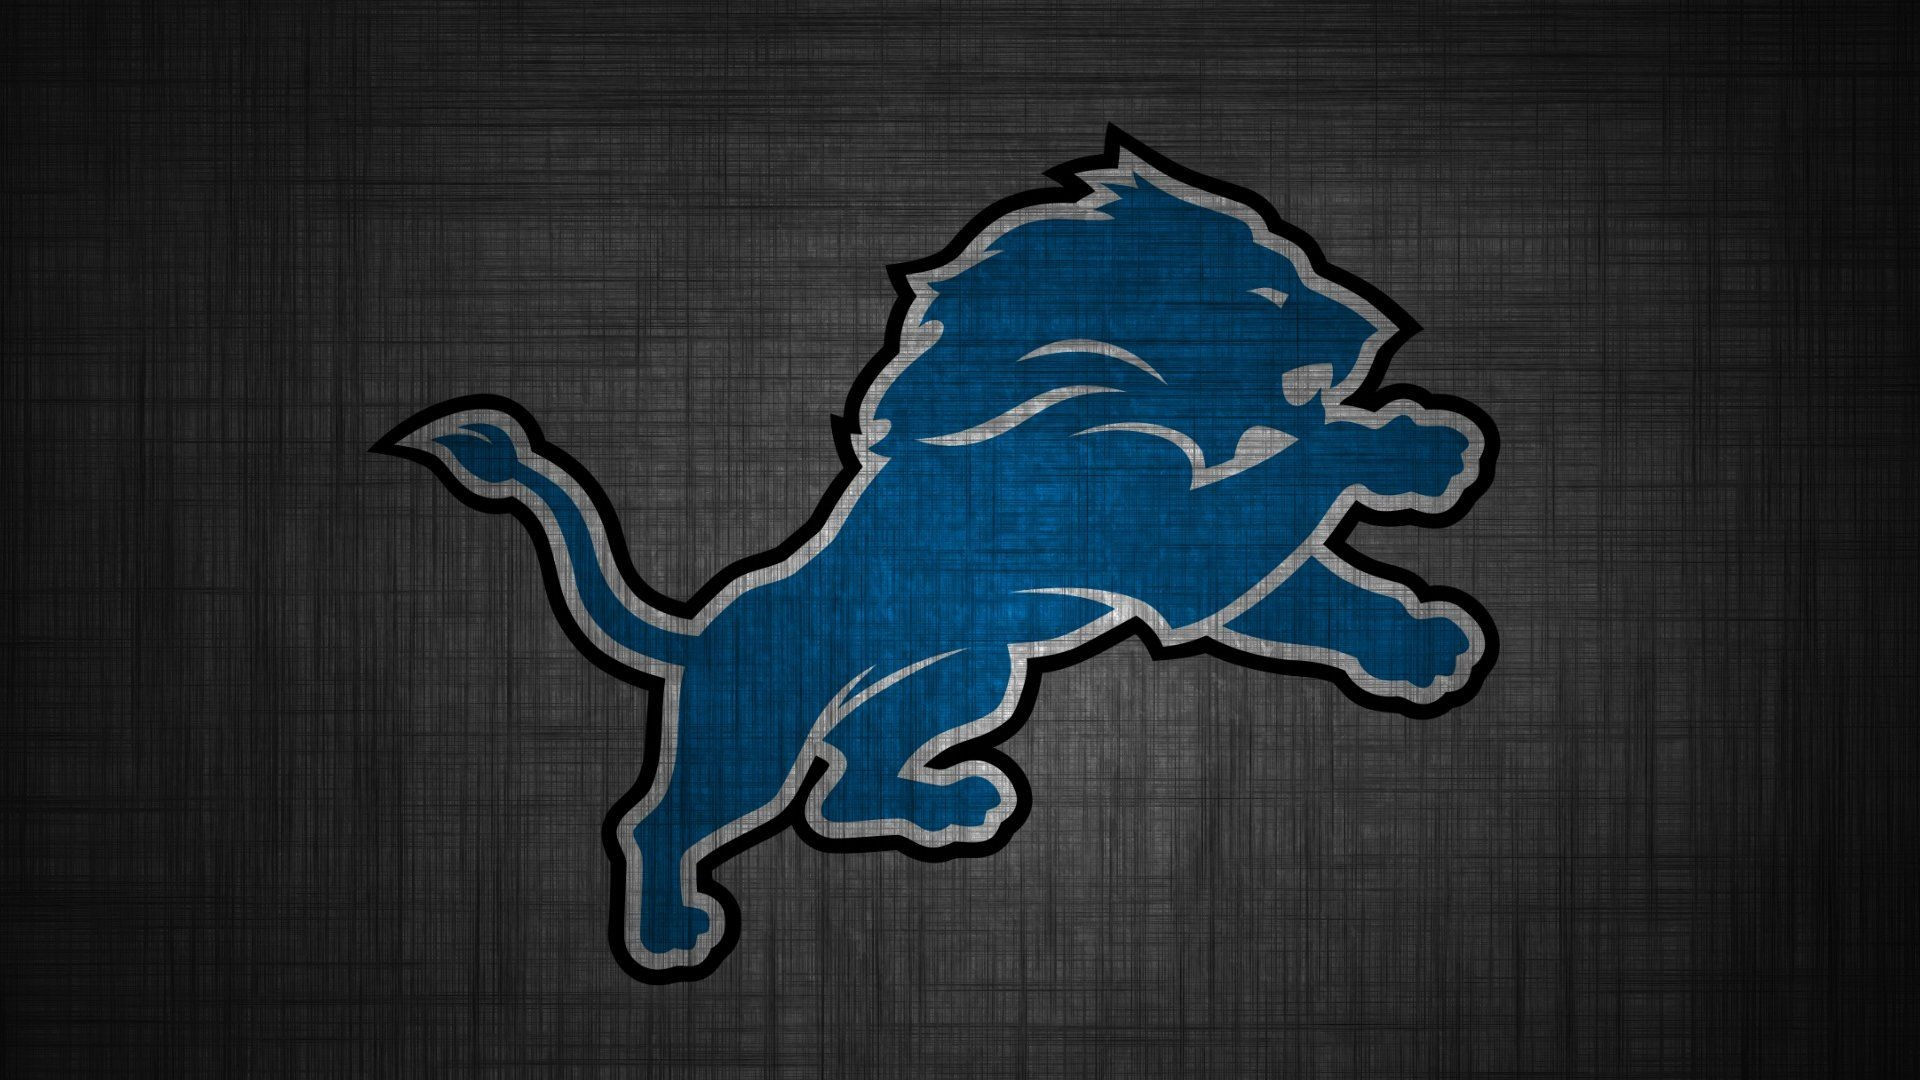 Res - 1920x1080, - Detroit Lions New Logo 2017 , HD Wallpaper & Backgrounds